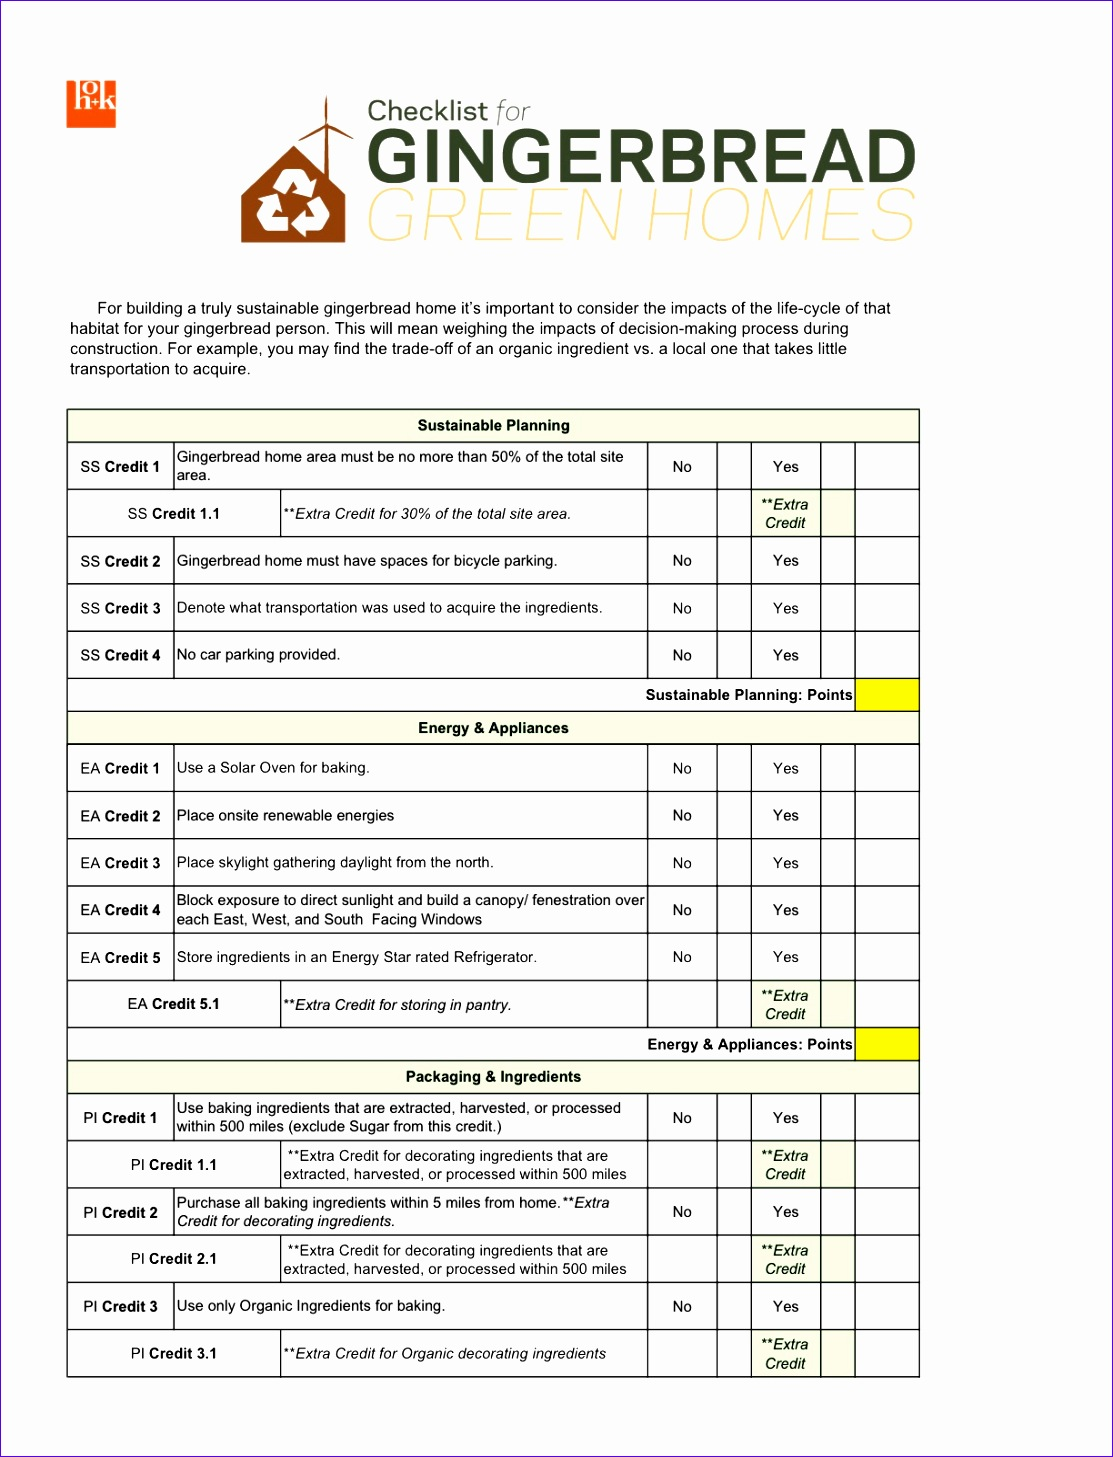 Quality Checklist Template Excel Ufdel New Ideas Home Renovation Checklist Home Renovation Checklist